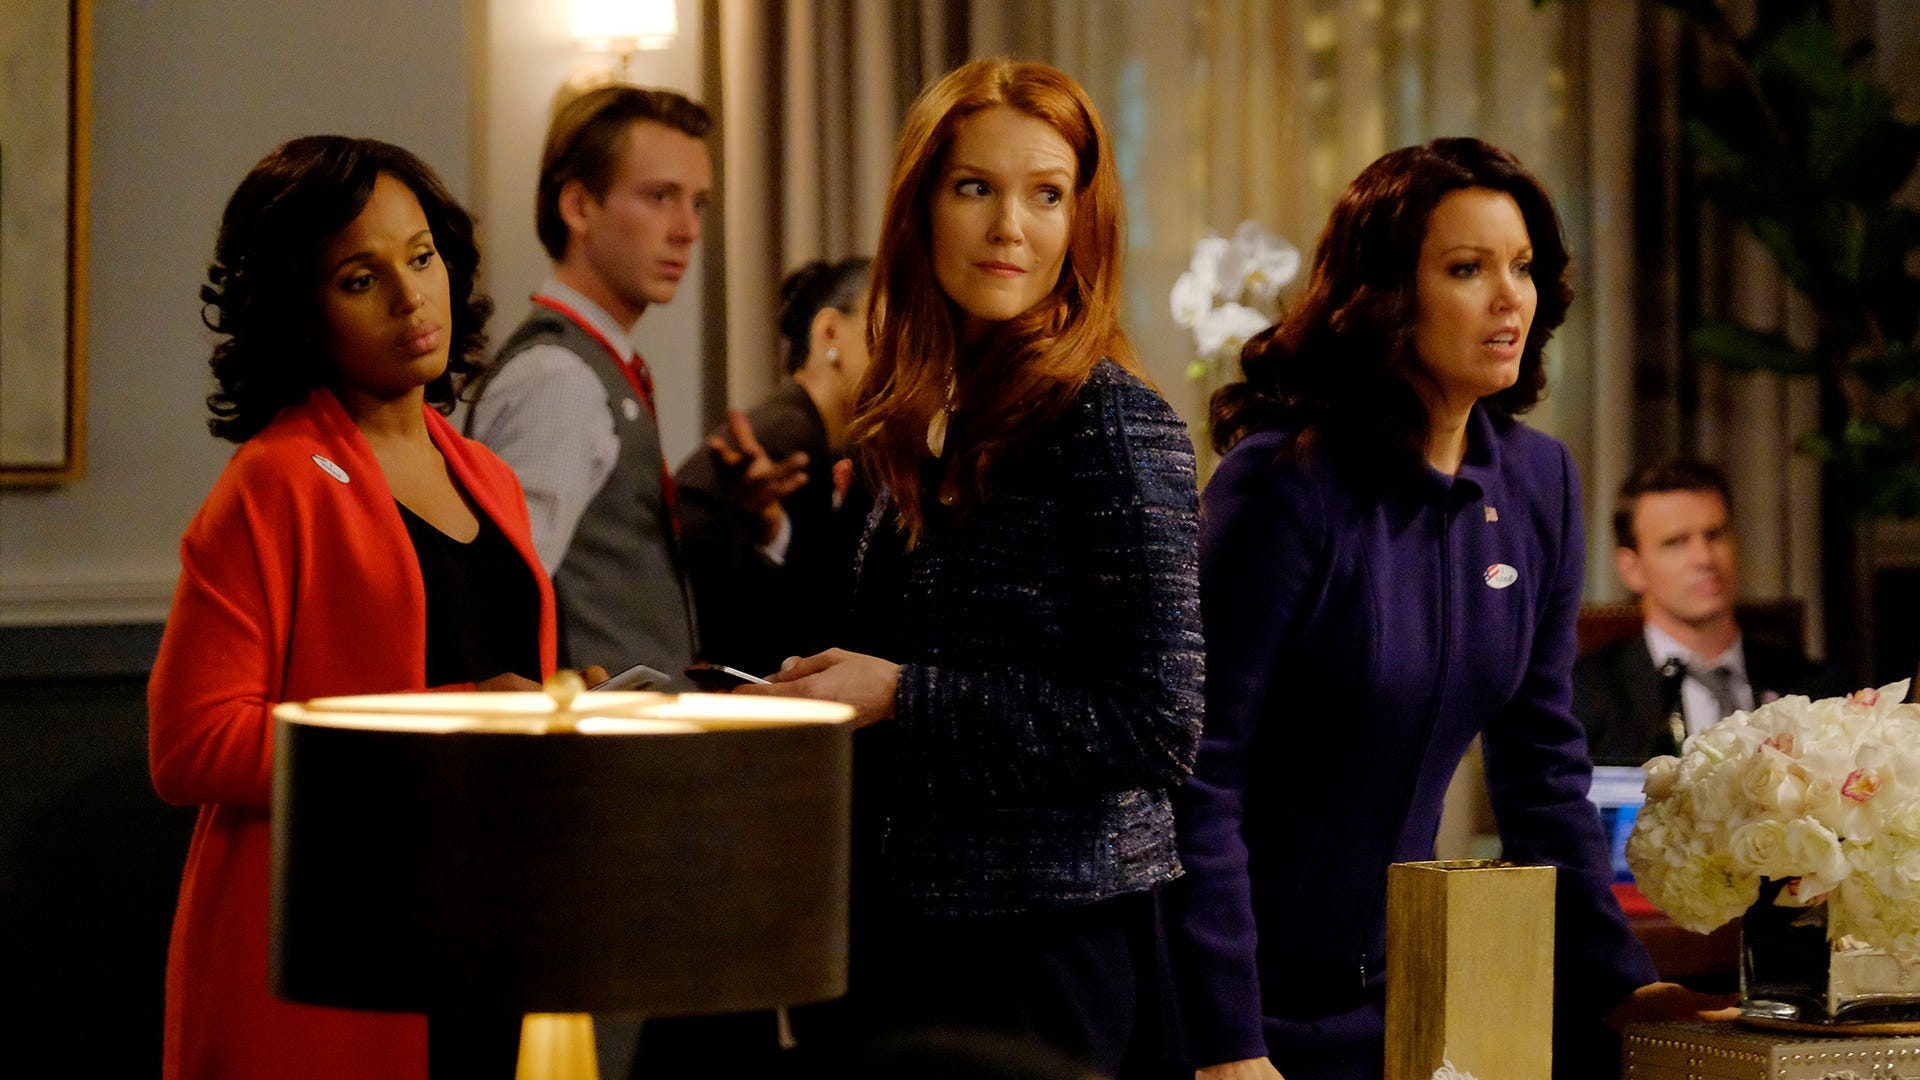 Kerry Washington, Darby Stanchfield and Bellamy Young, Scandal